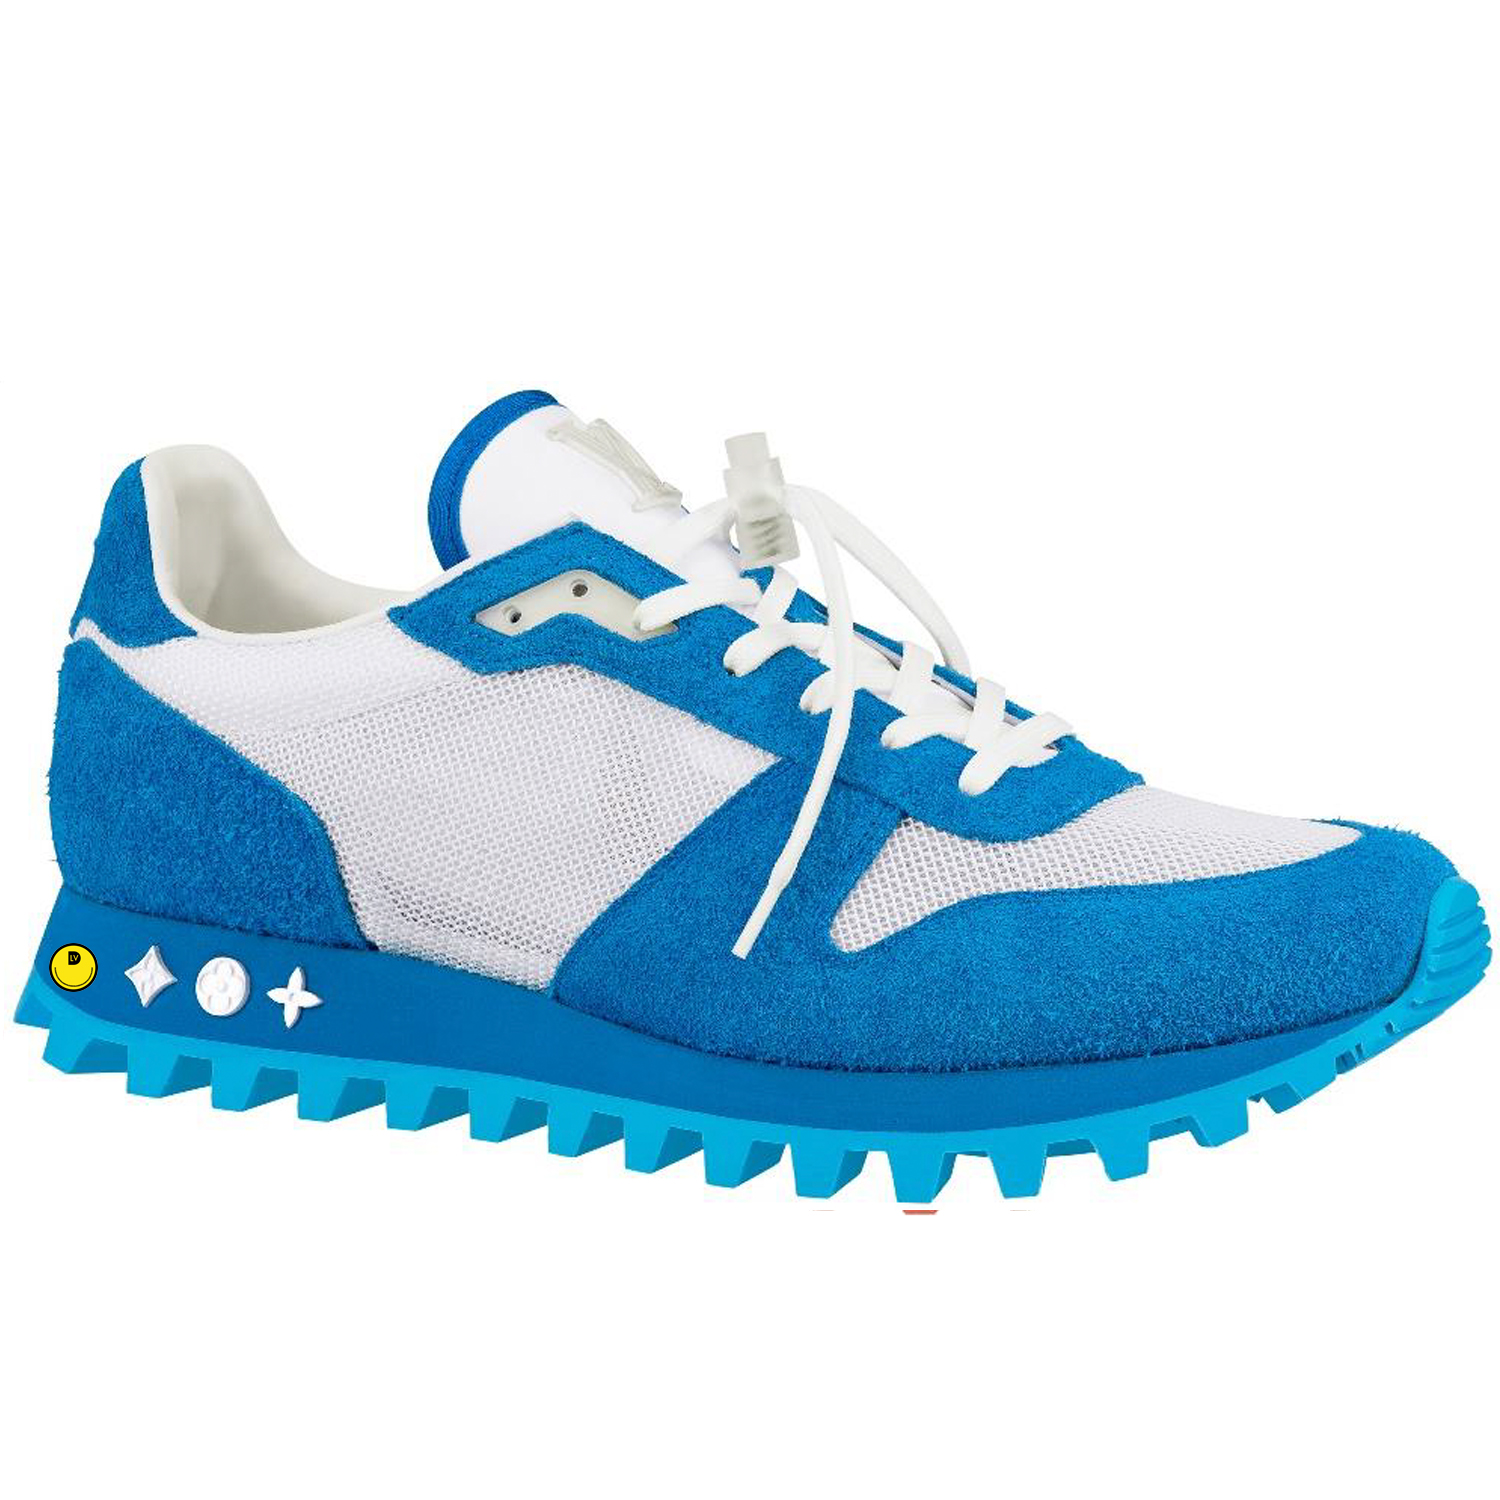 RUNNER SNEAKER - €750 $10201A54JTrouge